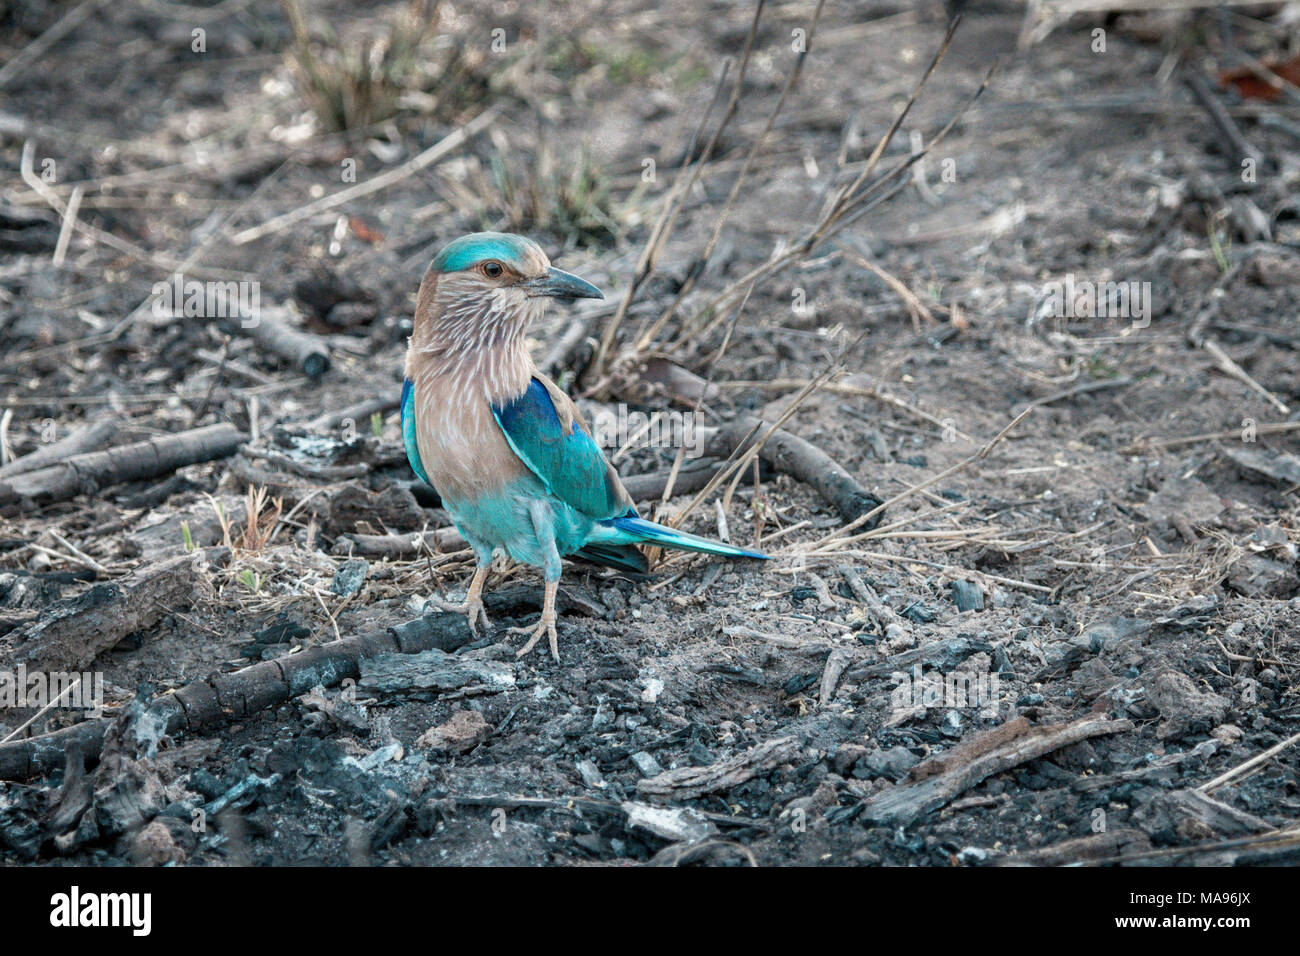 Indian Roller, Caracas benghalensis, standing on the ground, Bandhavgarh National Park, India Stock Photo